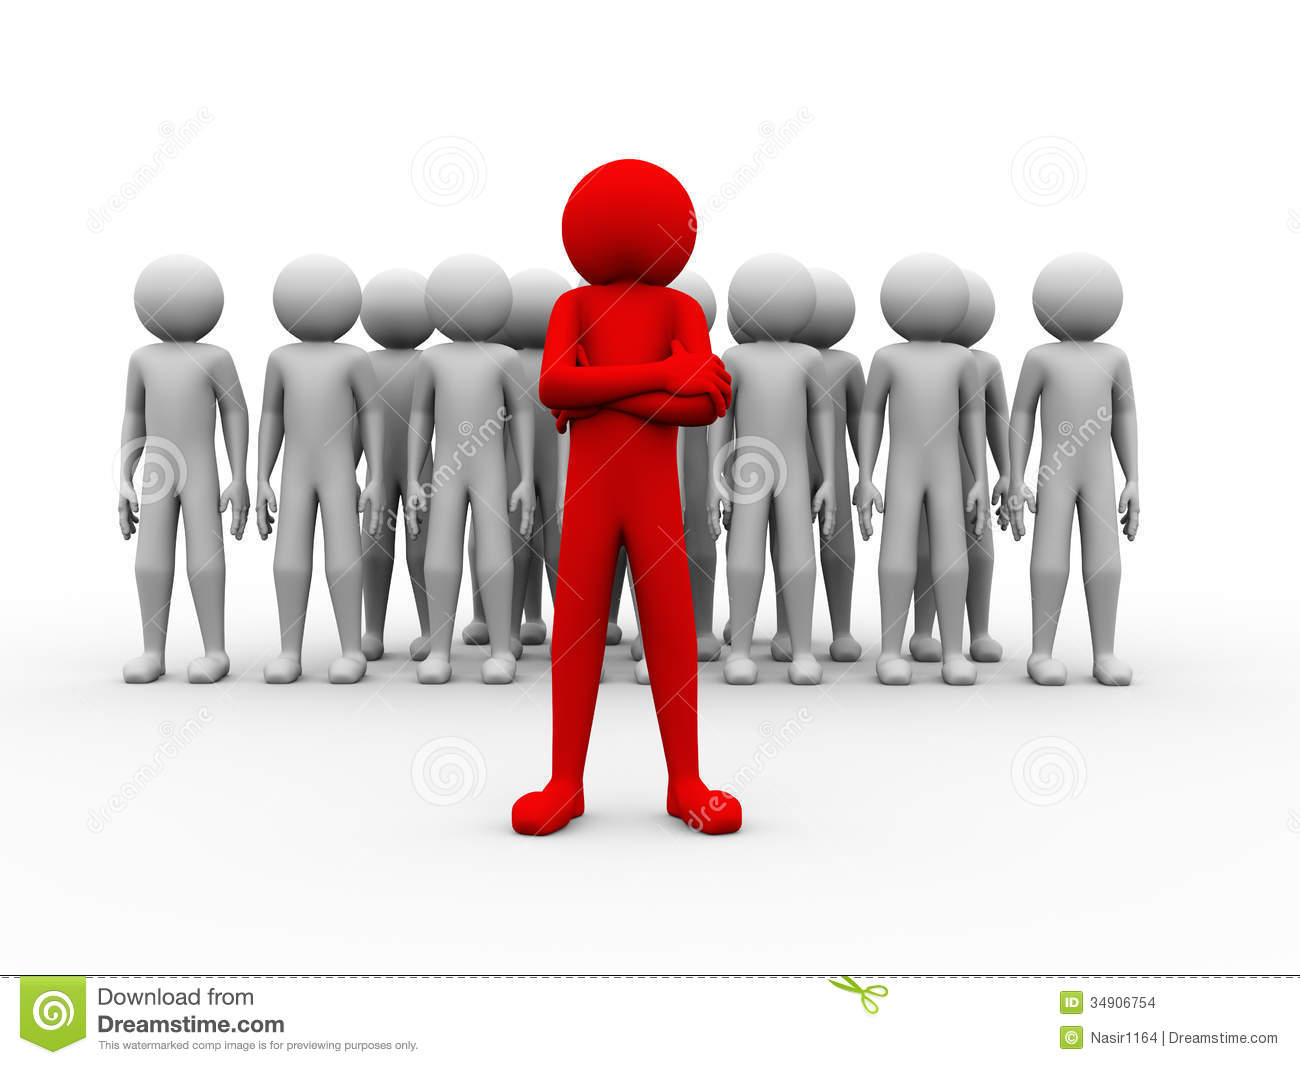 d successful red man team leader illustration stock images 3d successful red man team leader illustration